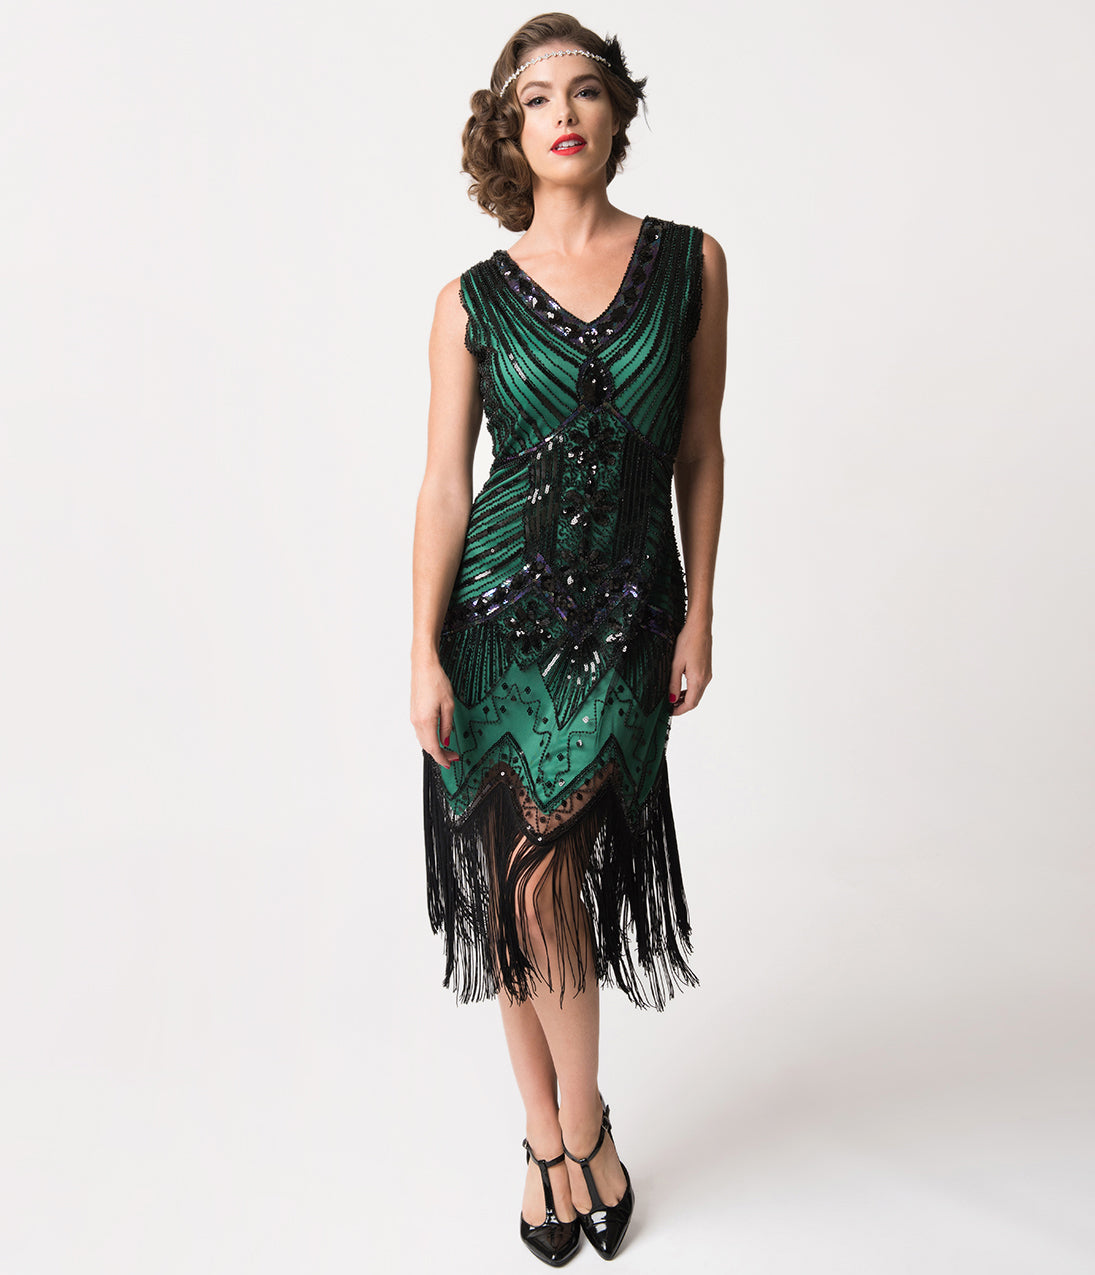 1920s Evening Gowns by Year Unique Vintage 1920S Deco Green  Black Sequin Veronique Fringe Flapper Dress $98.00 AT vintagedancer.com